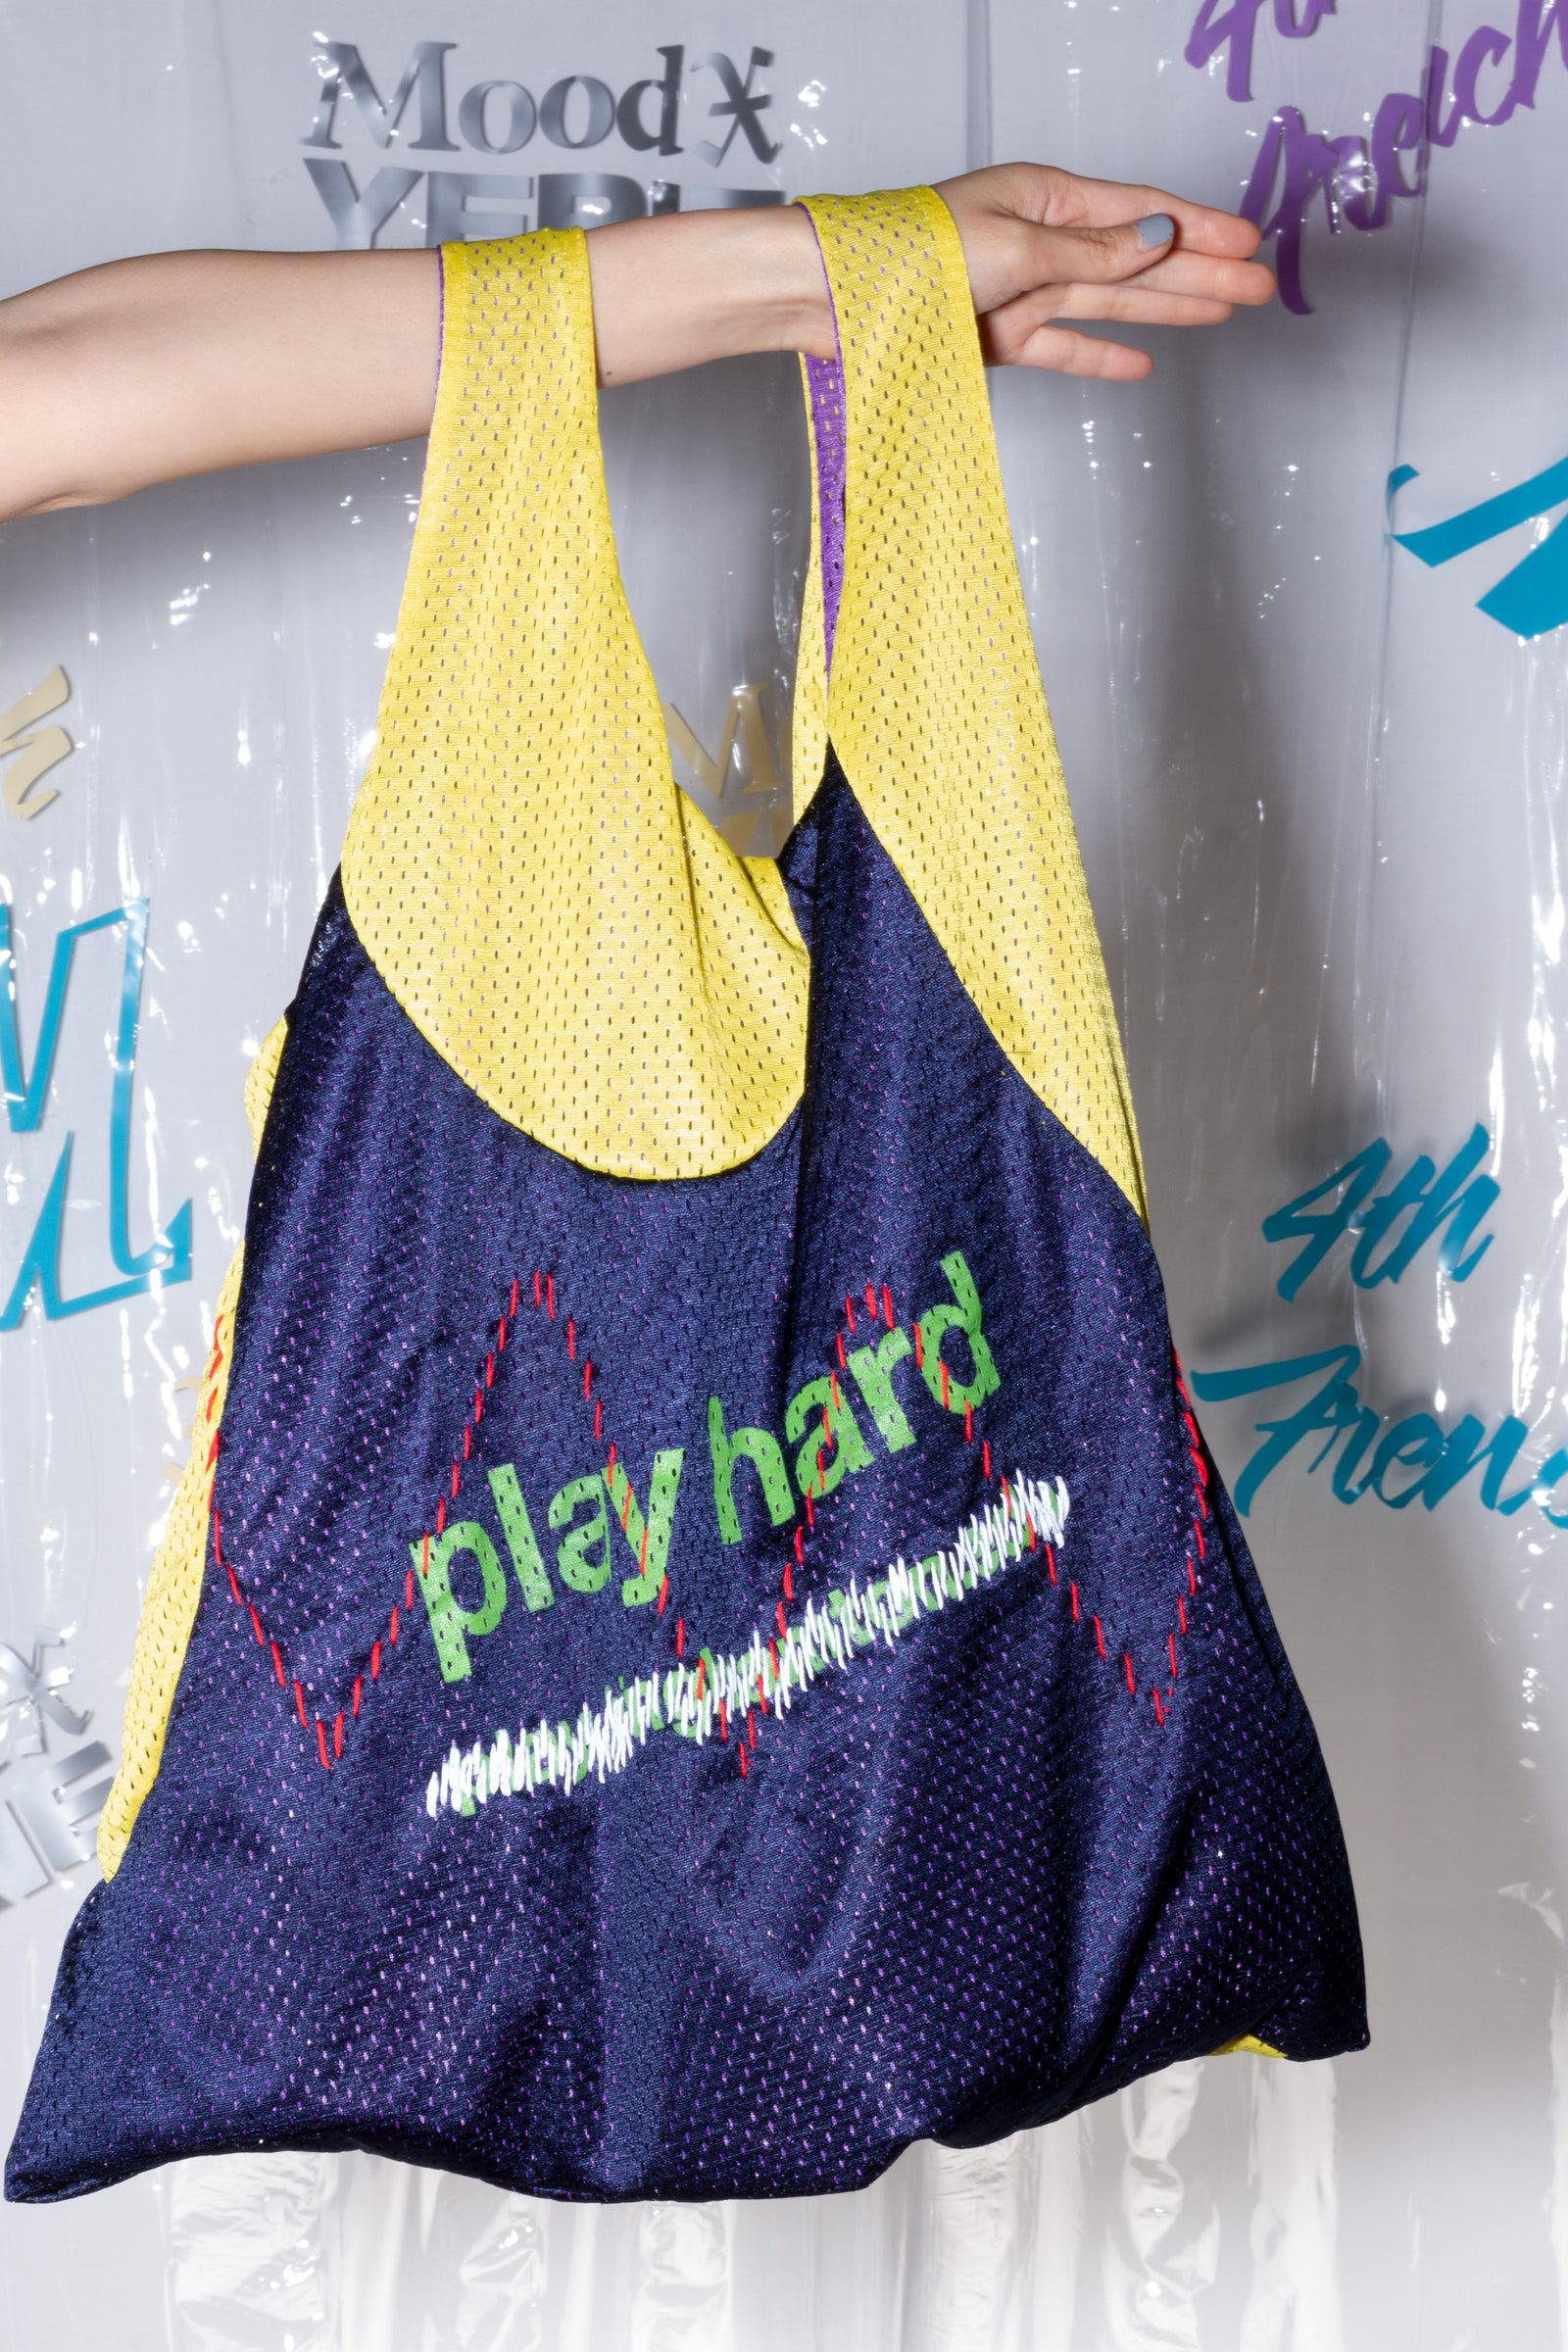 Play Hard Tote Bag, Mood X Yerie